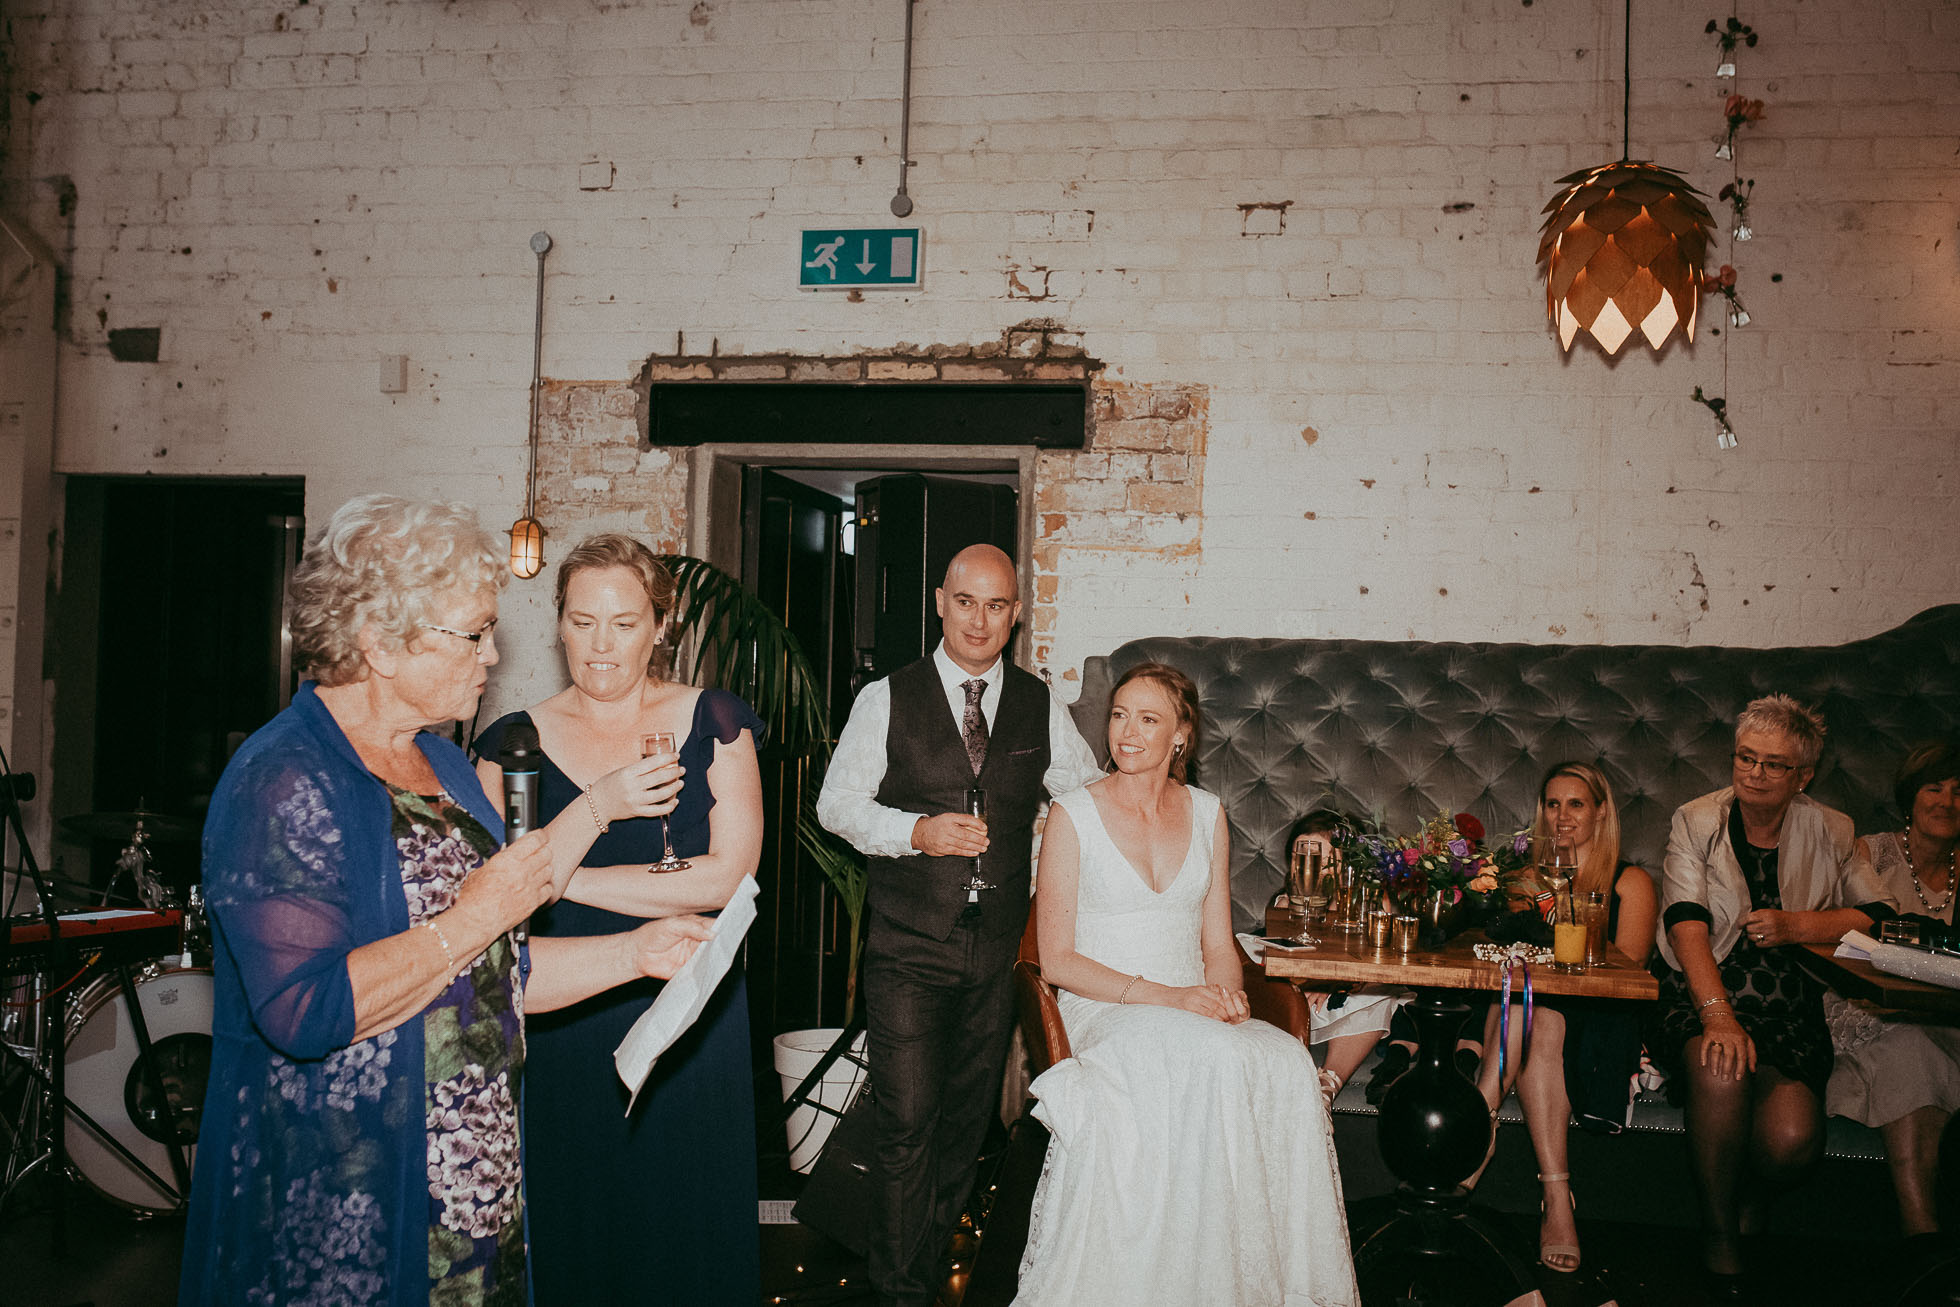 night reception - flash wedding photography - Auckland New Zealand photographers - Everybody's